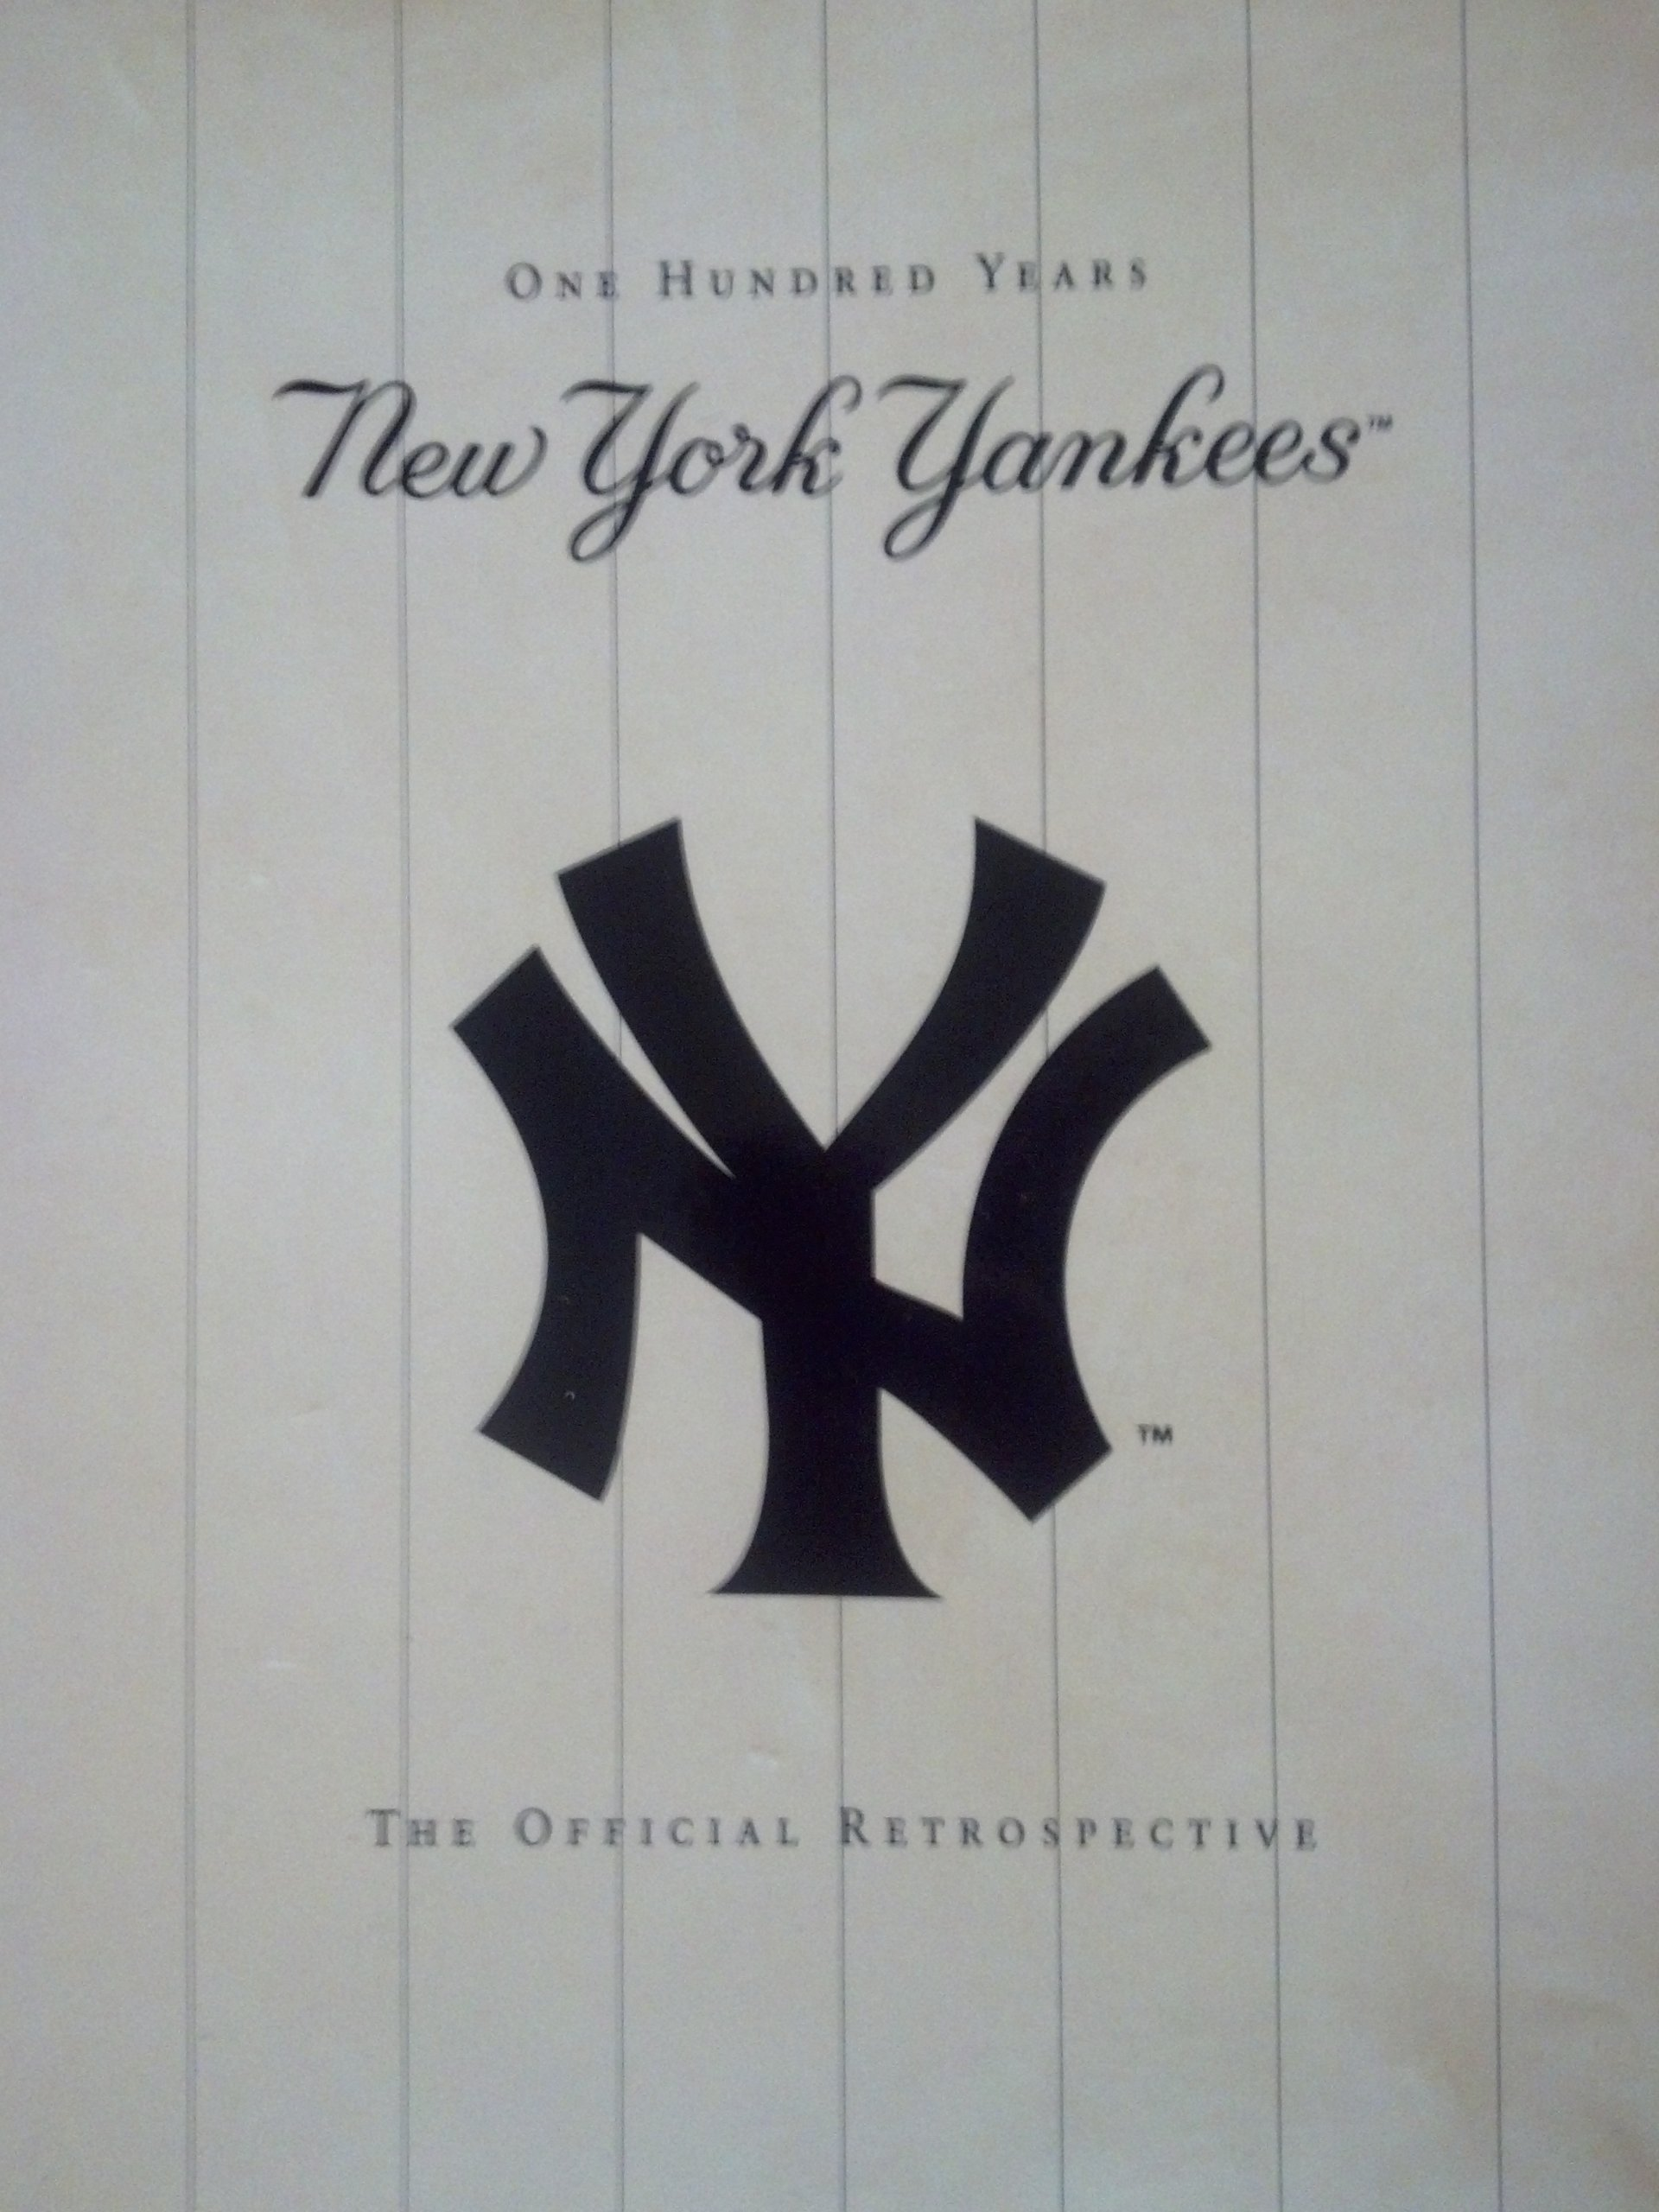 Read Online ONE HUNDRED YEARS. NEW YORK YANKEES. THE OFFICIAL RETROSPECTIVE. PDF